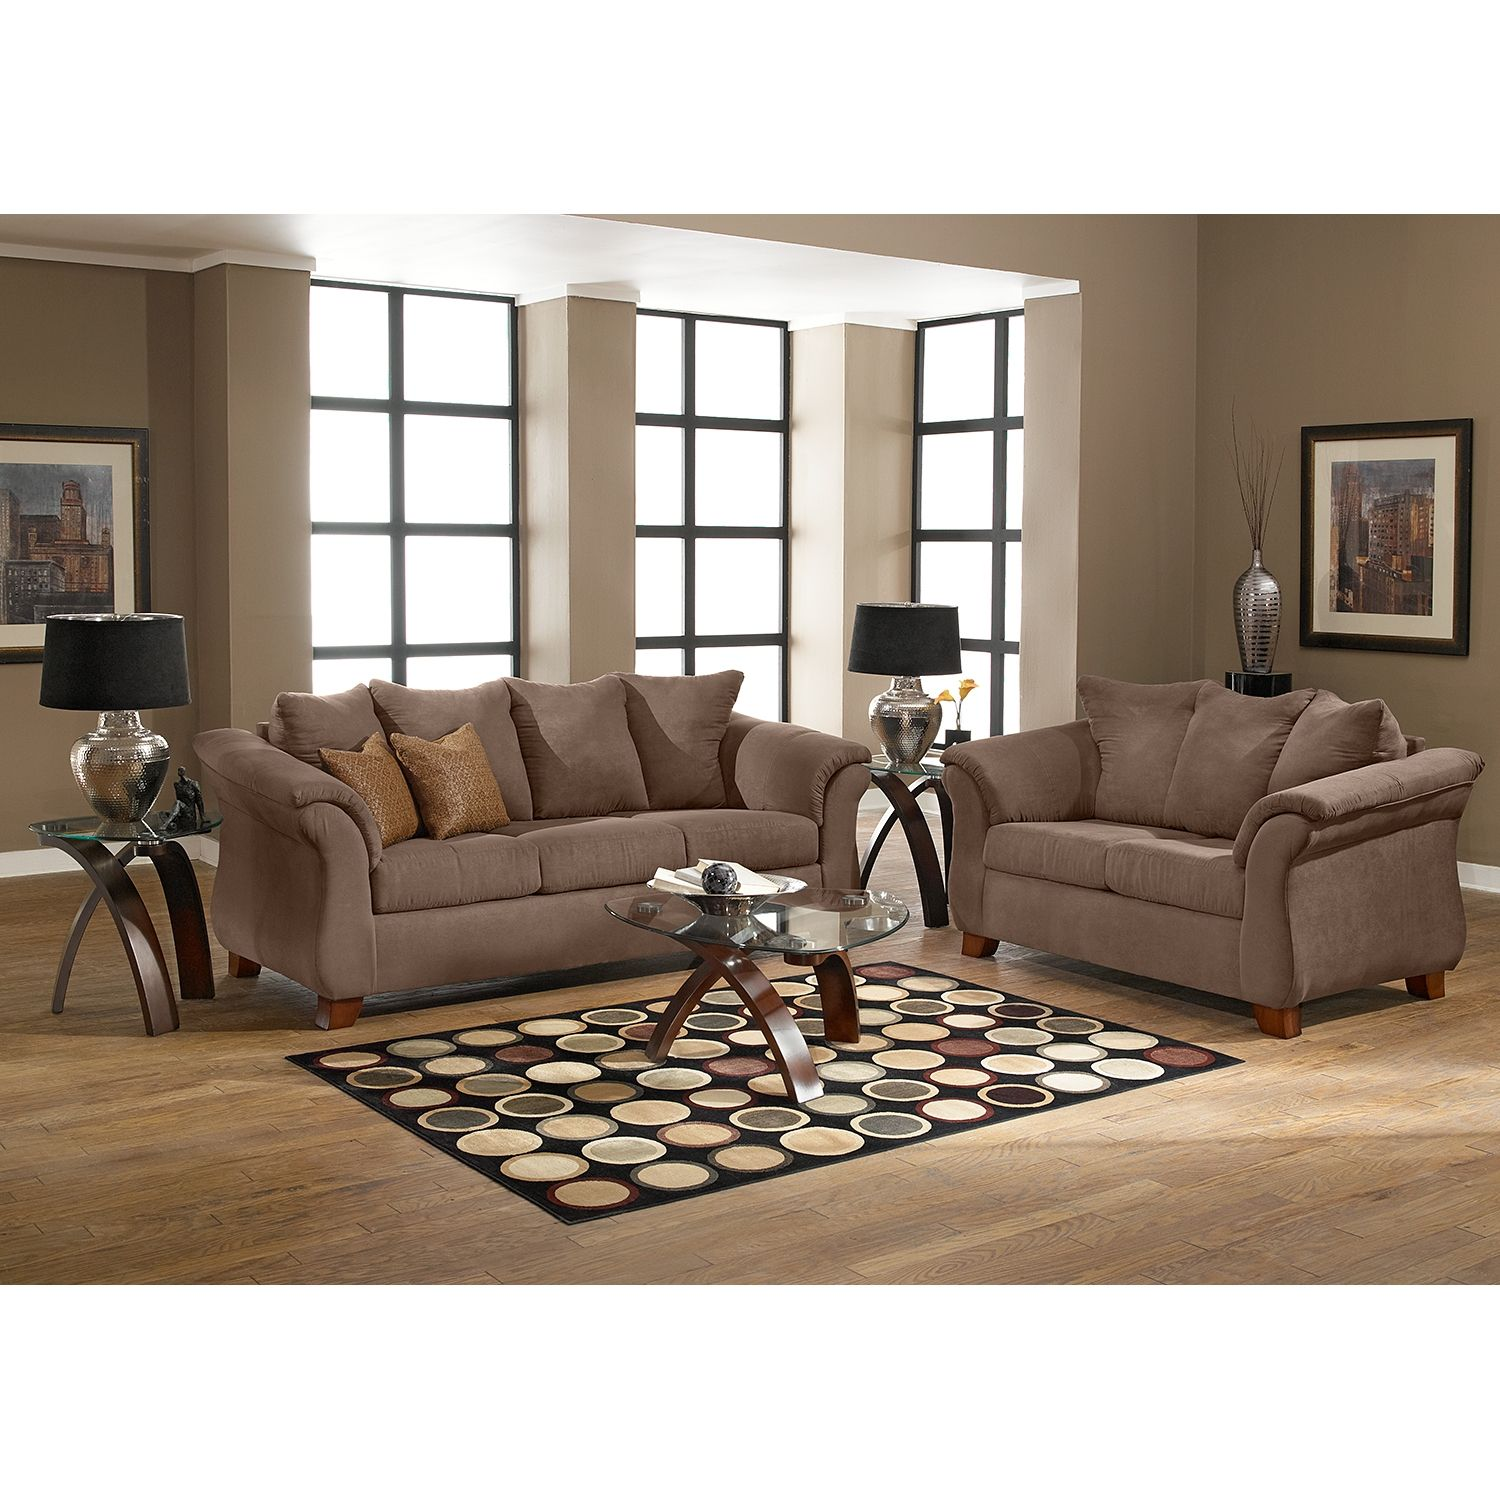 Adrian Sofa Living Room Colors Value City Furniture Sofa Decor